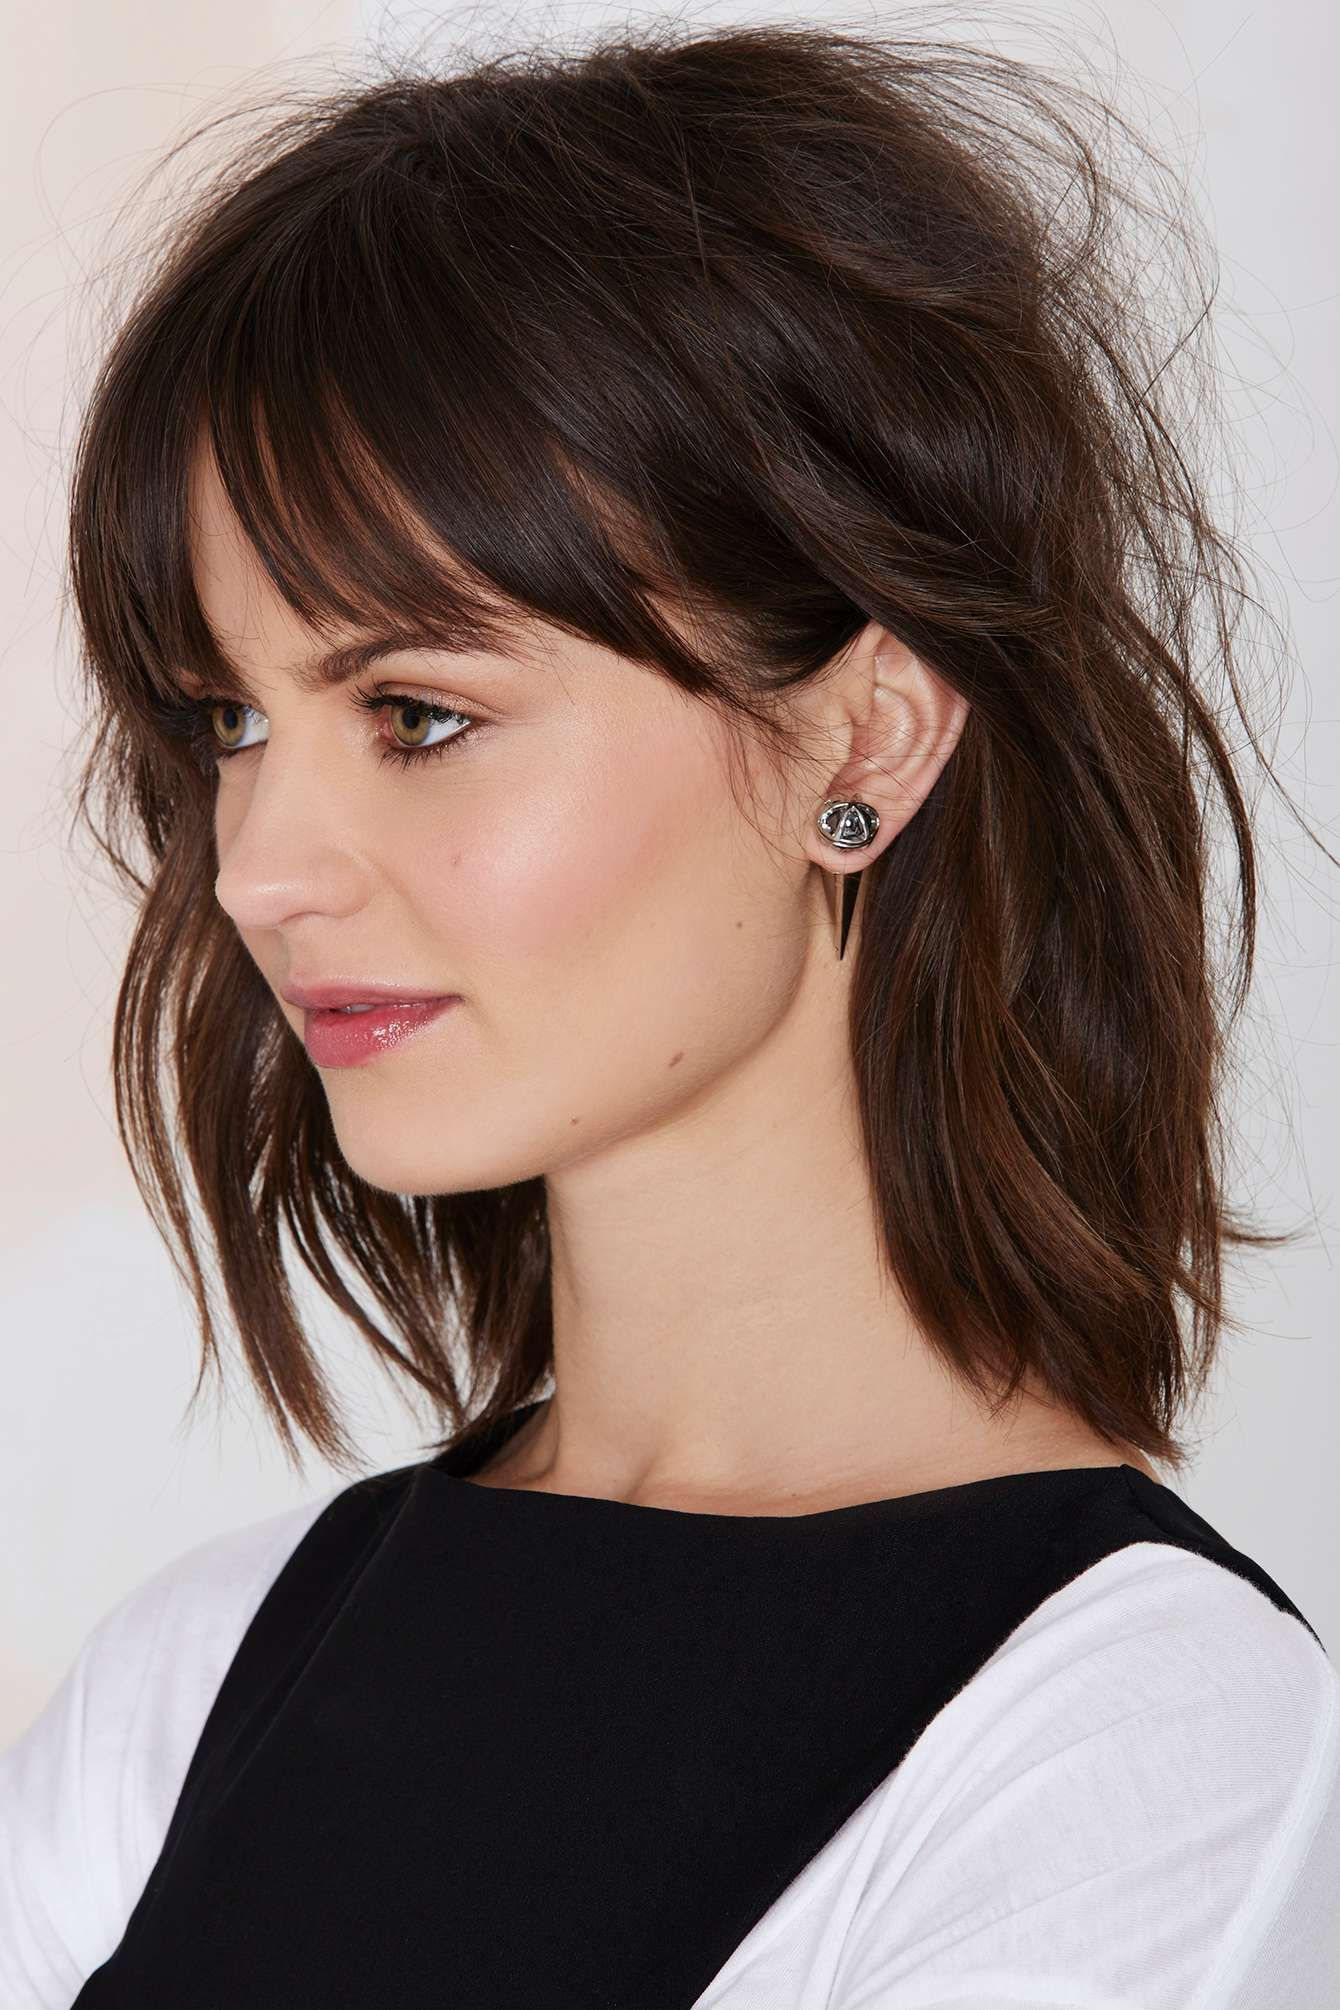 Spear us the details Hairstyles Pinterest